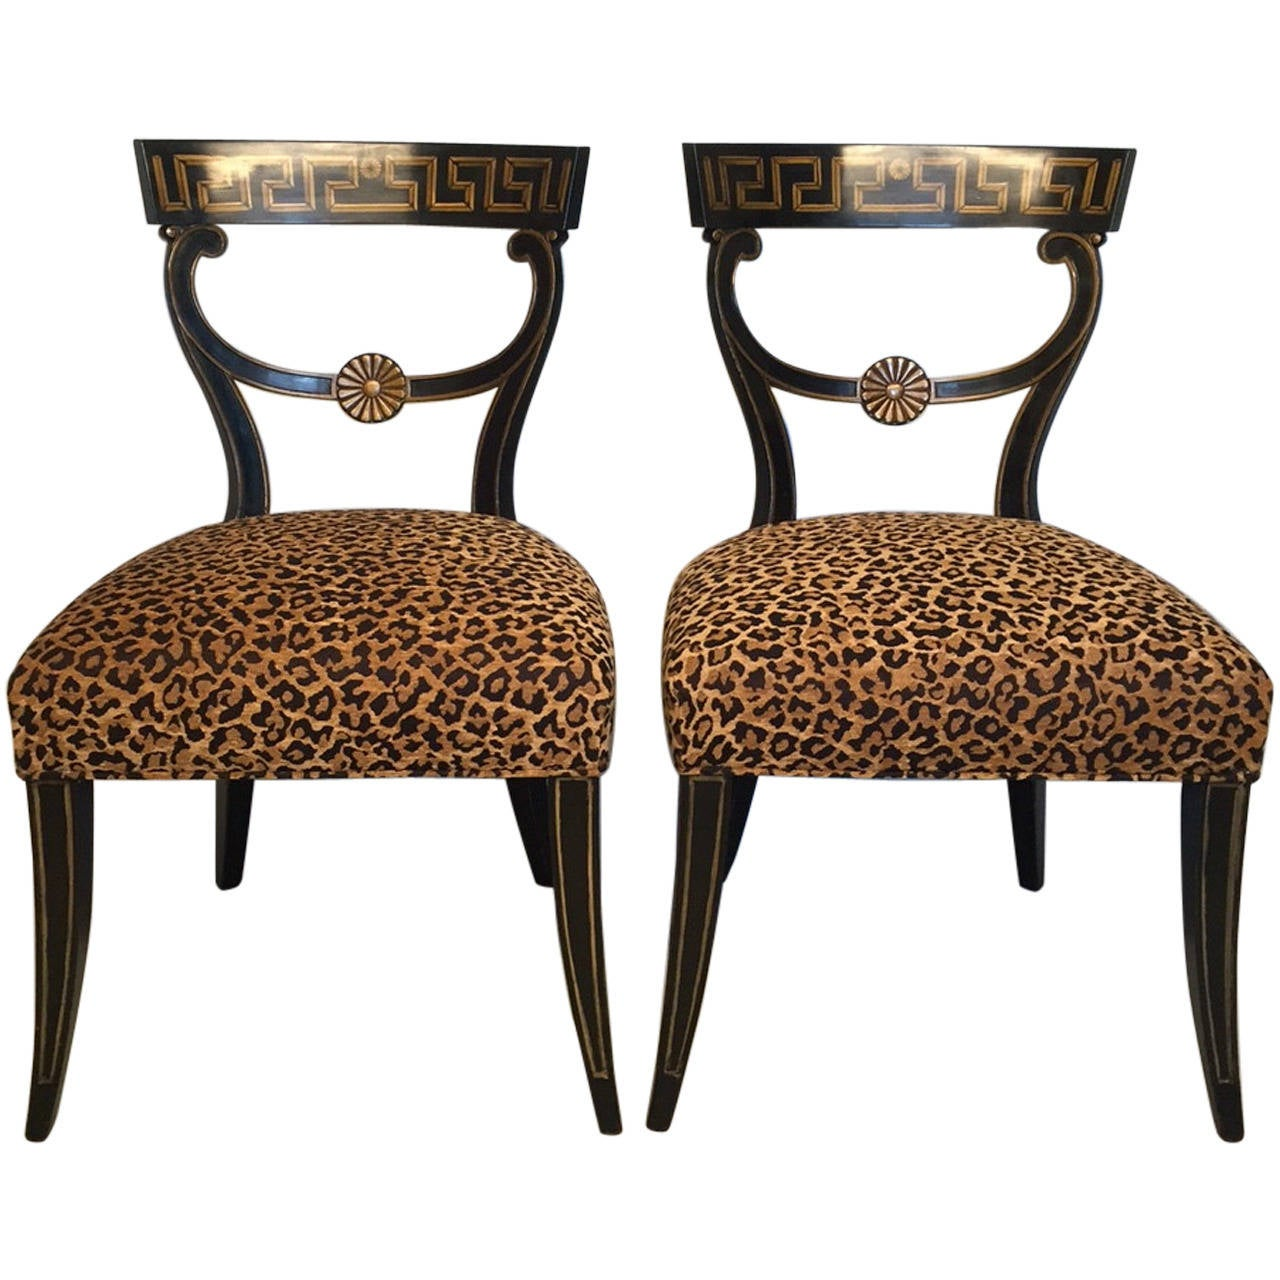 Regency Style Chairs ~ Pair of s dressy hollywood regency style side chairs